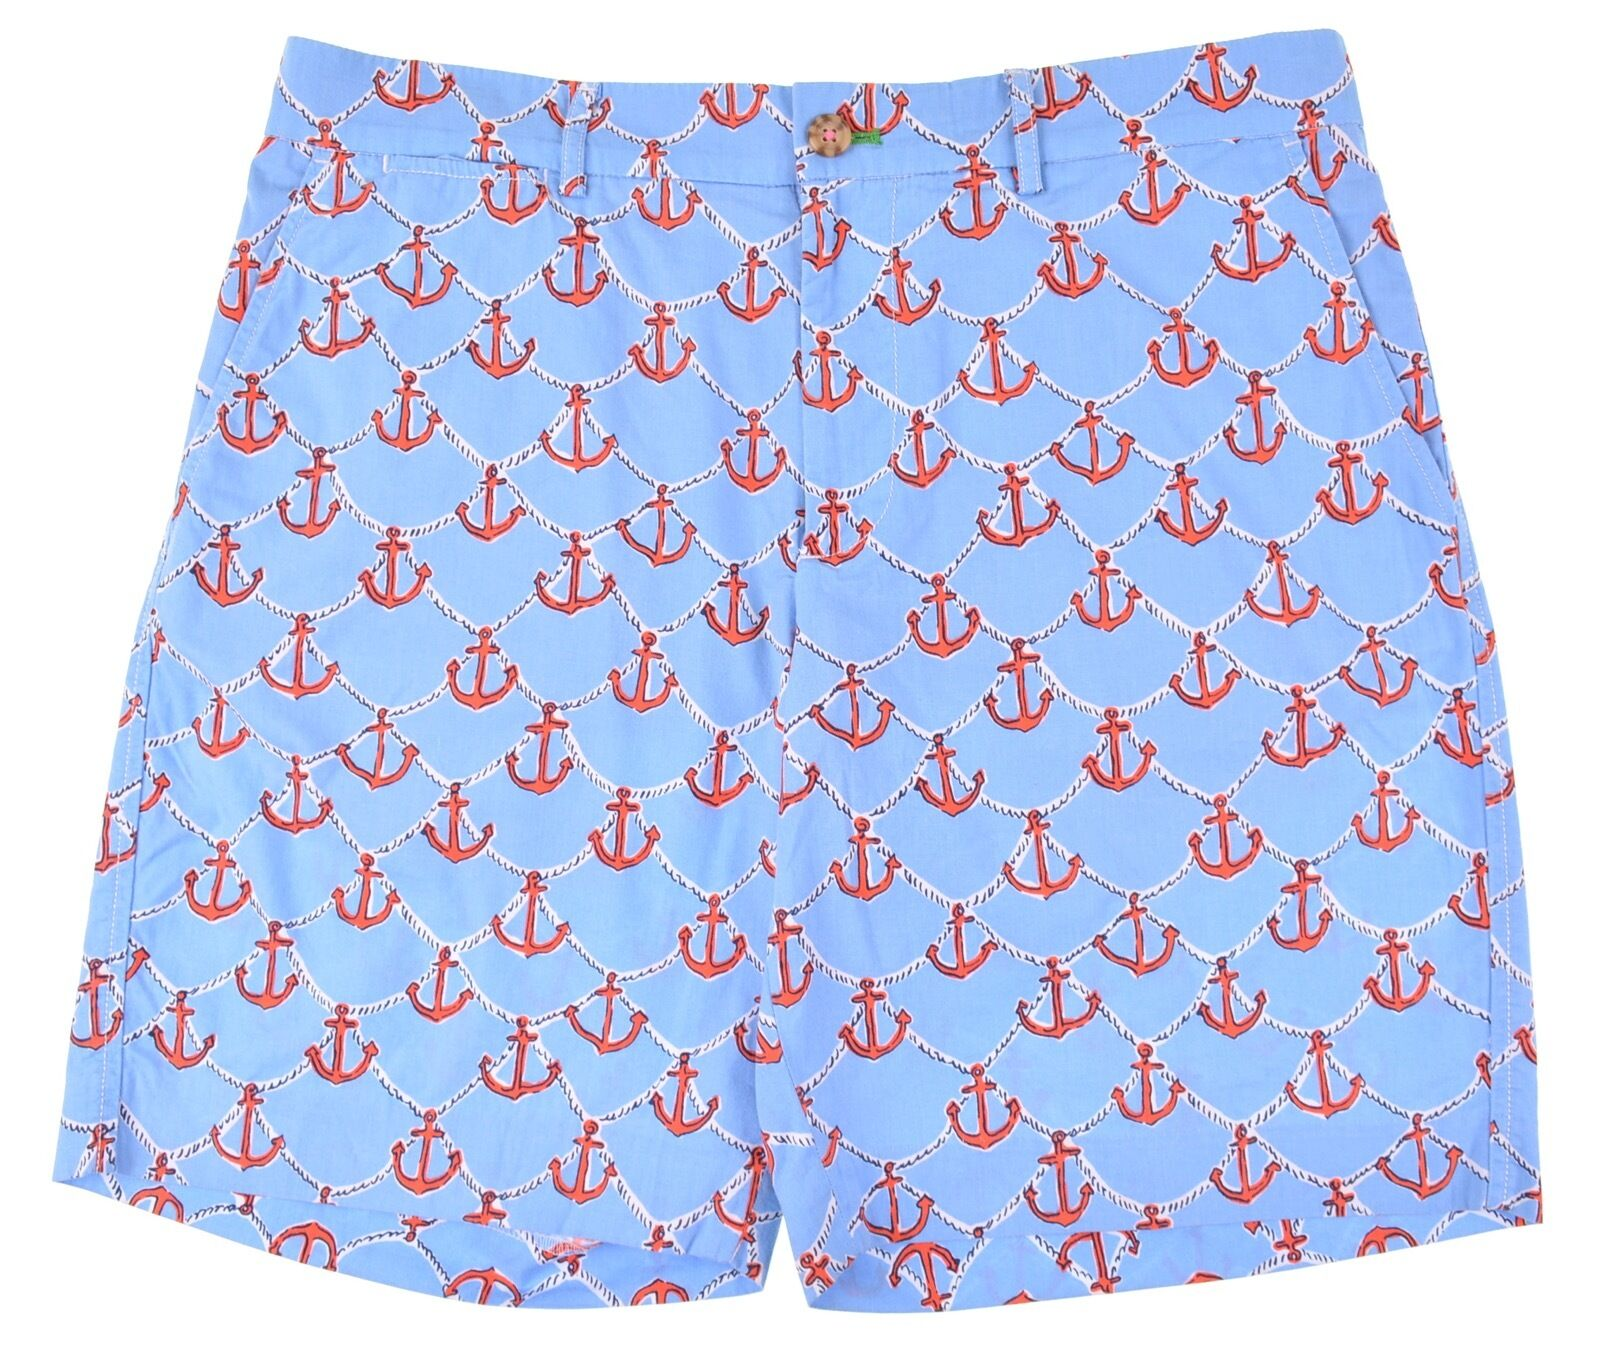 Lilly Pulitzer ANCHORS AWAY Limited RARE Print bluee Cotton Fitz Shorts 34